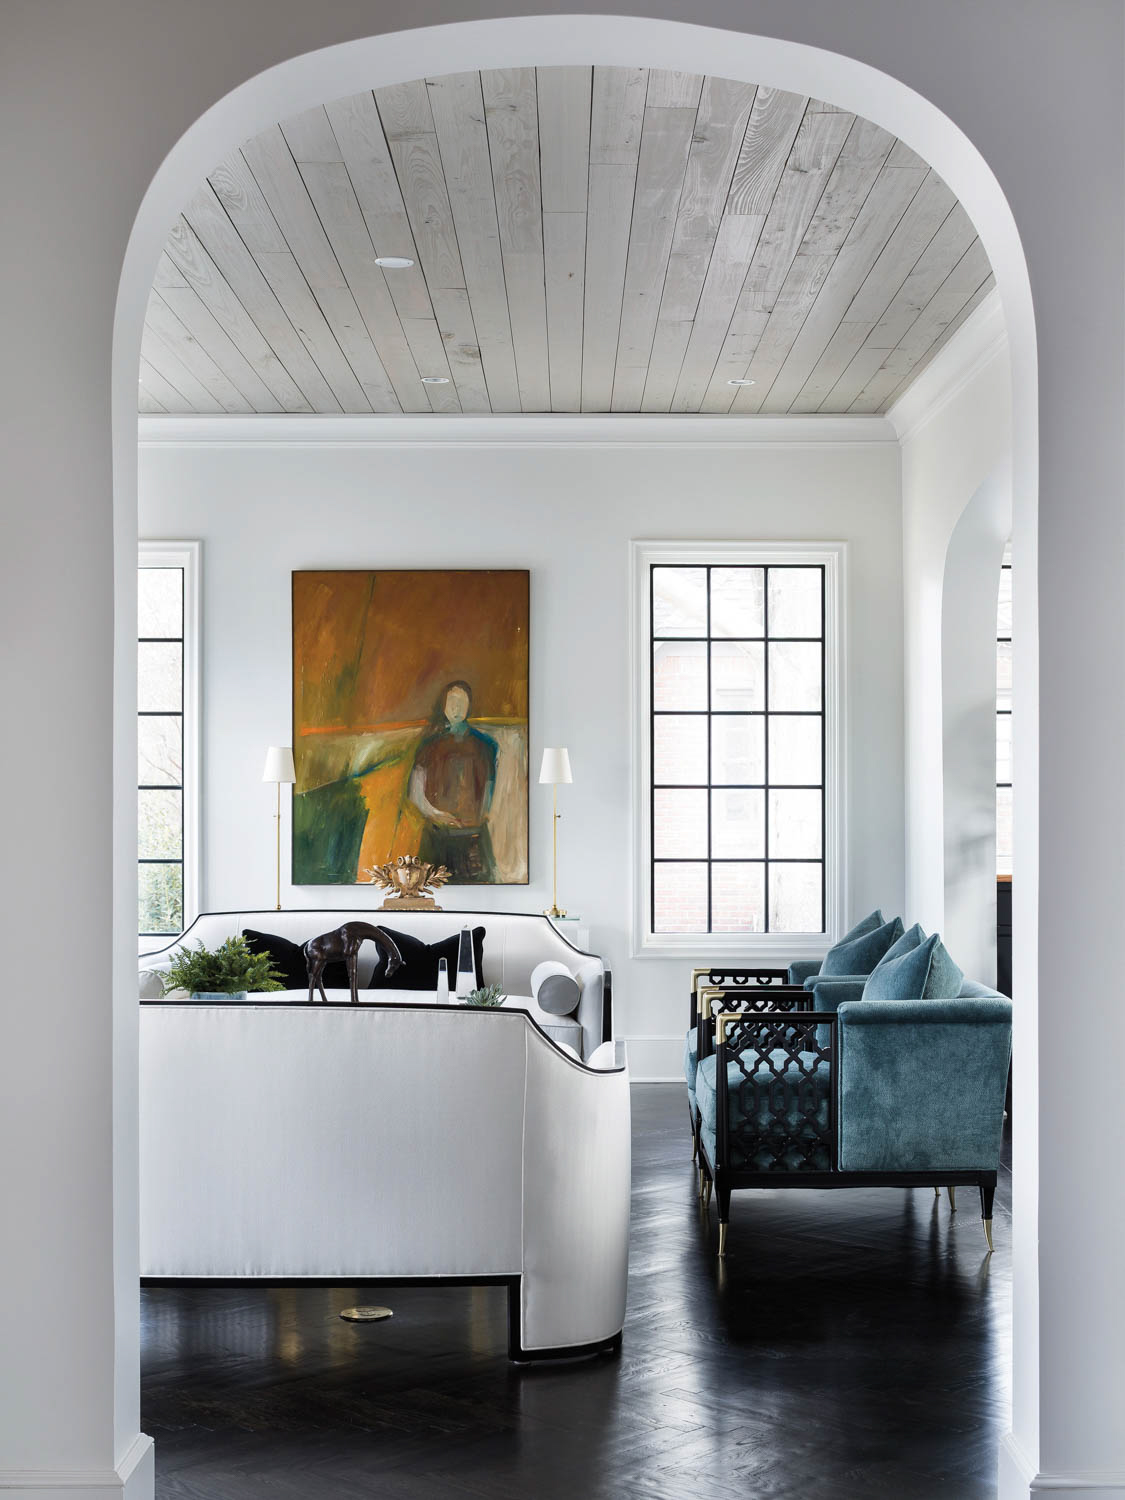 entry into a living area with blue sofa and white chair